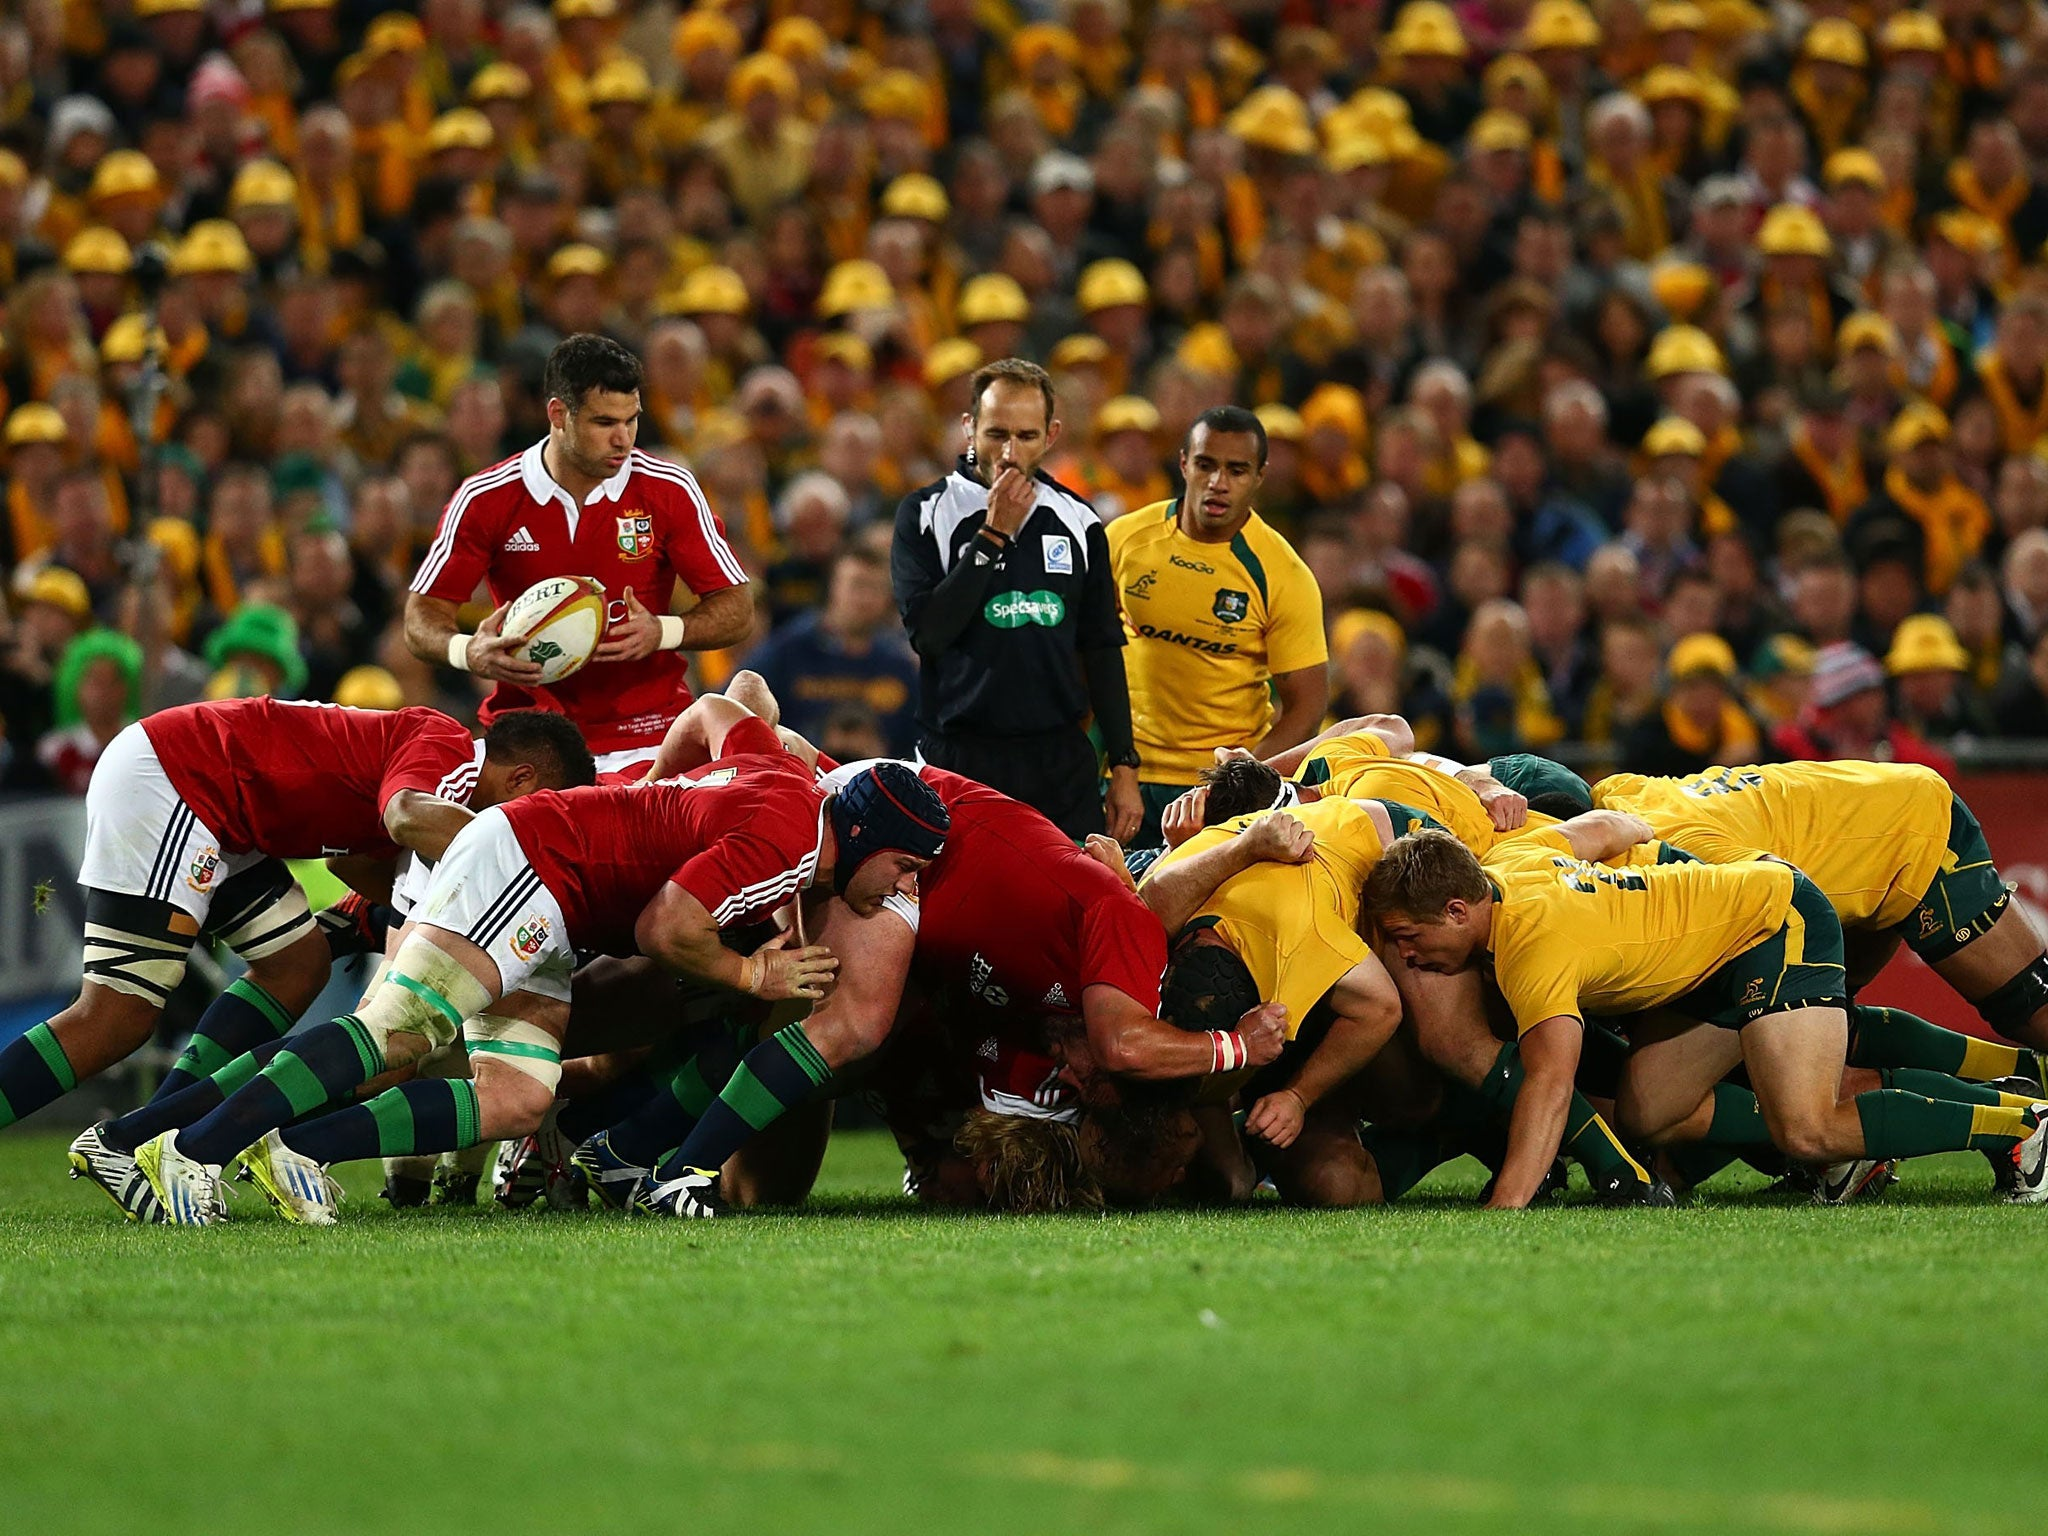 The collapse of the scrum as we know it | The Independent